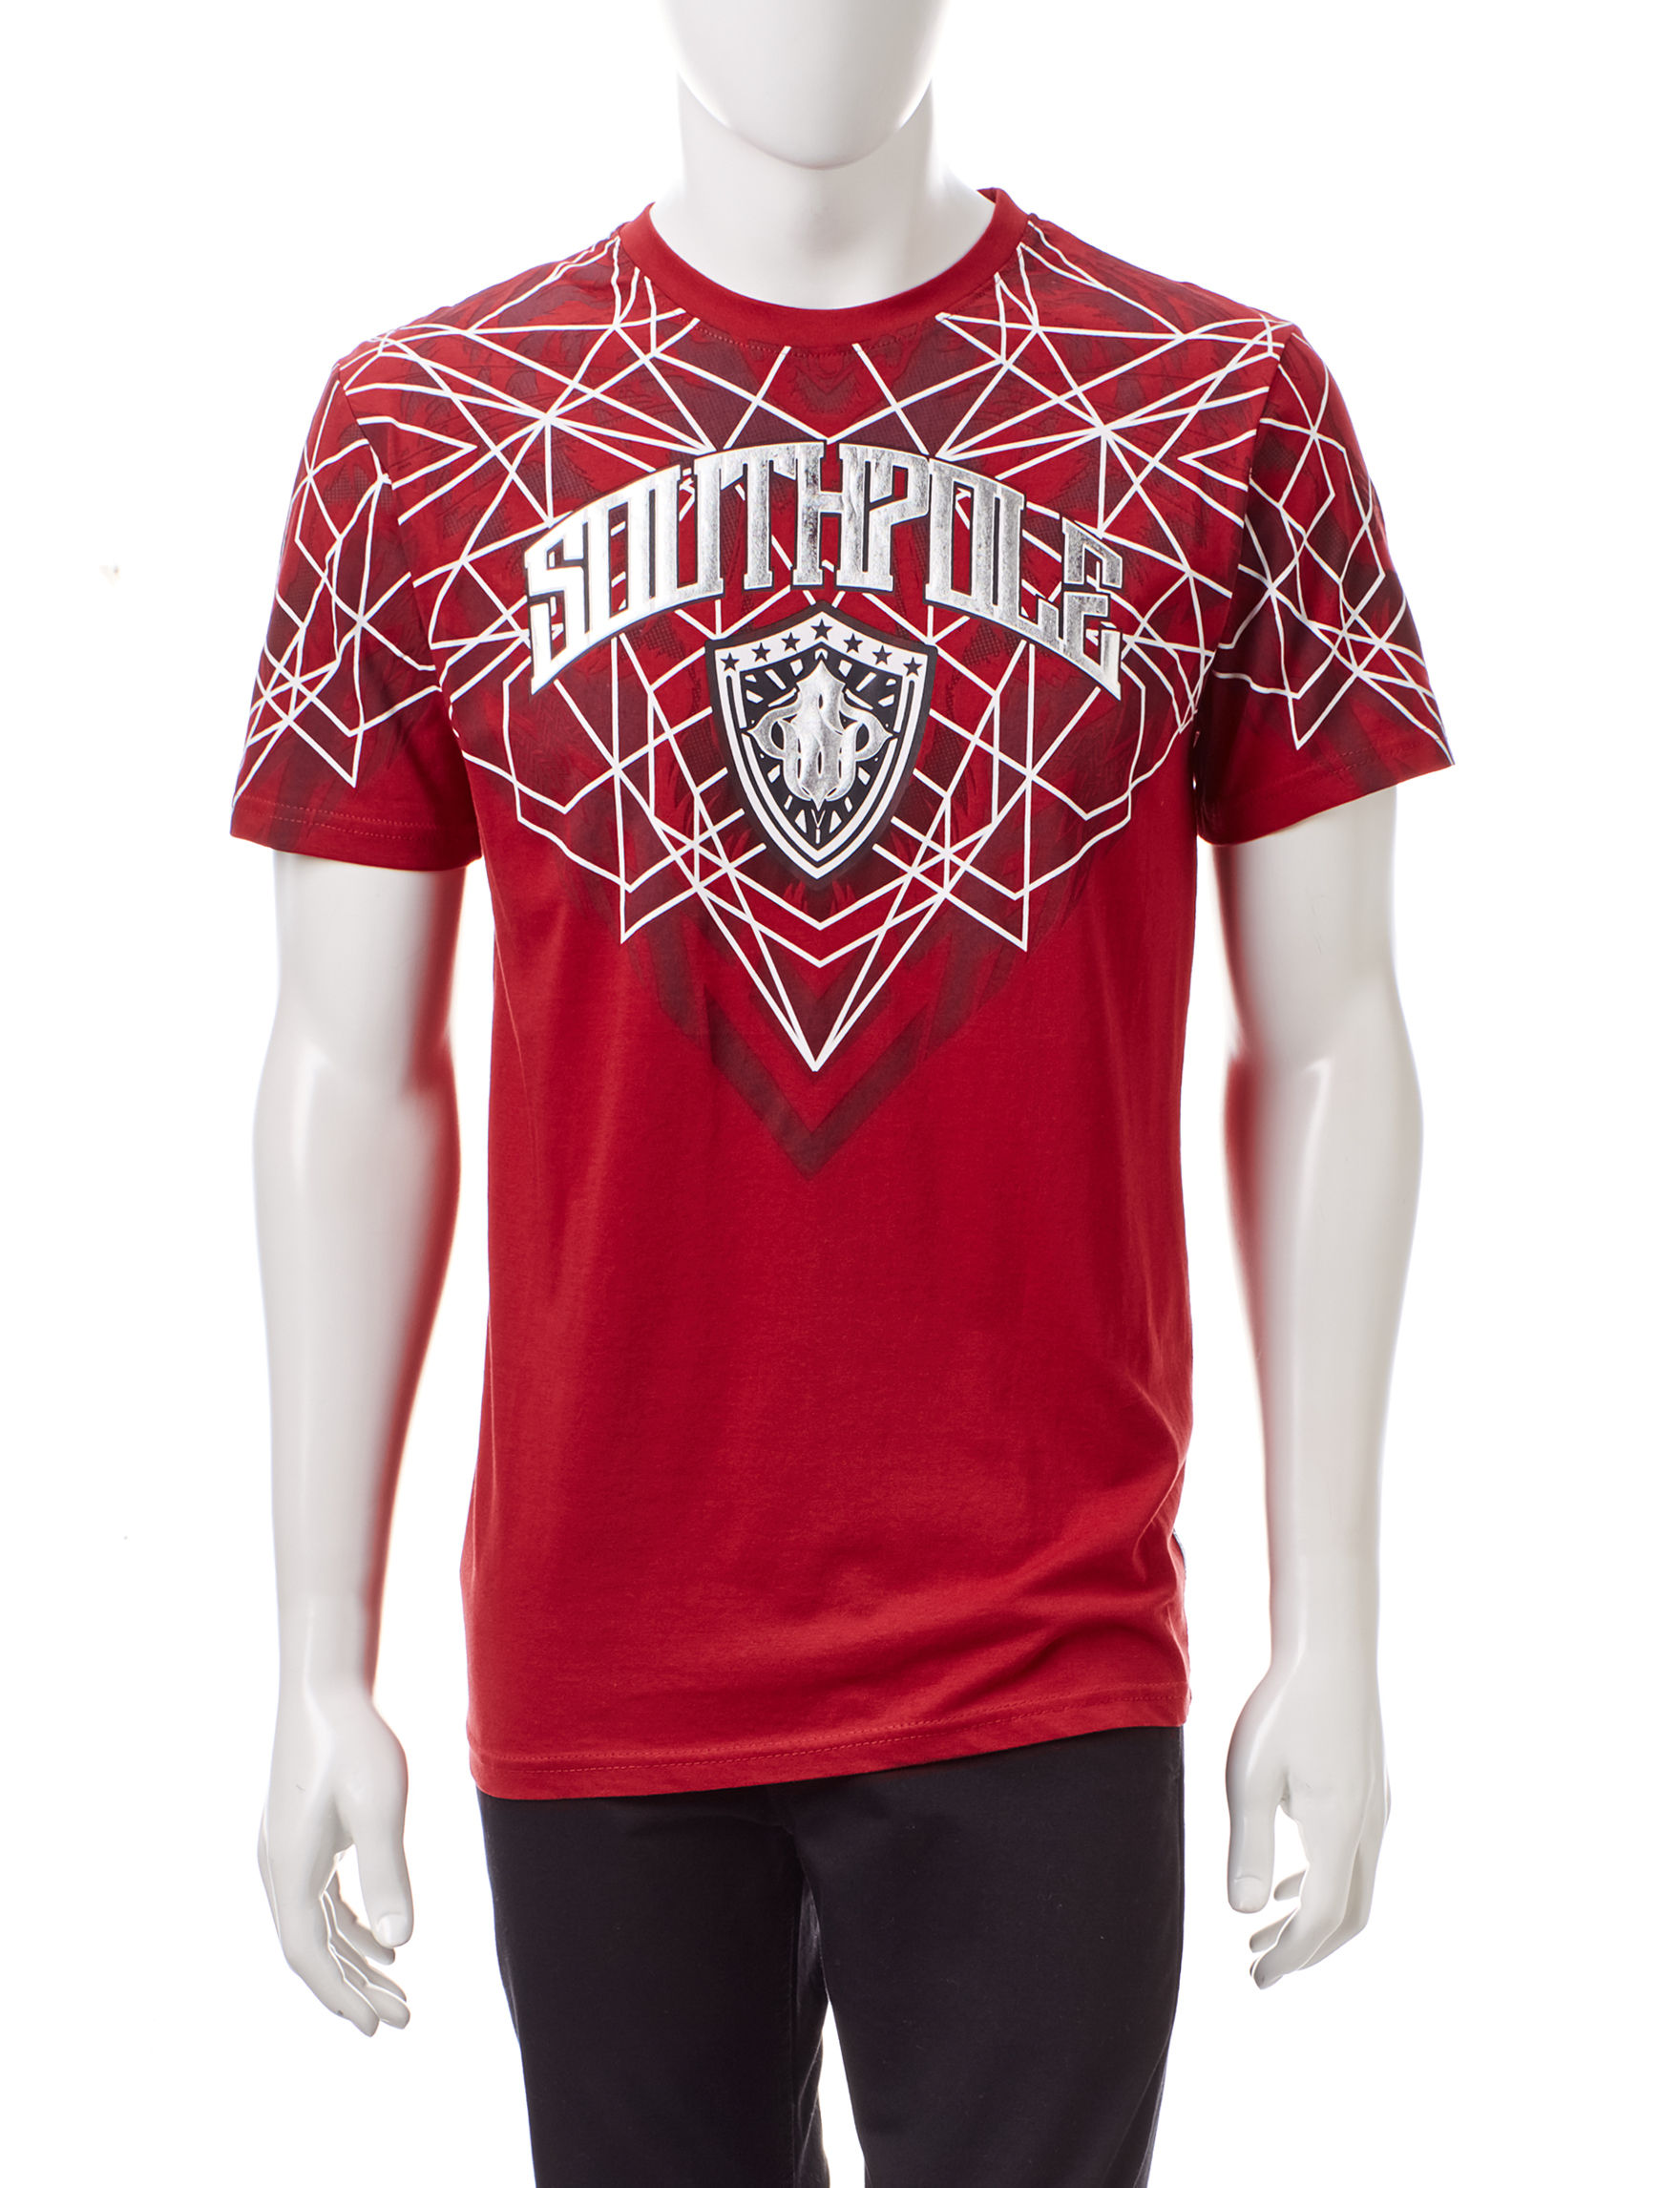 Southpole Red Tees & Tanks